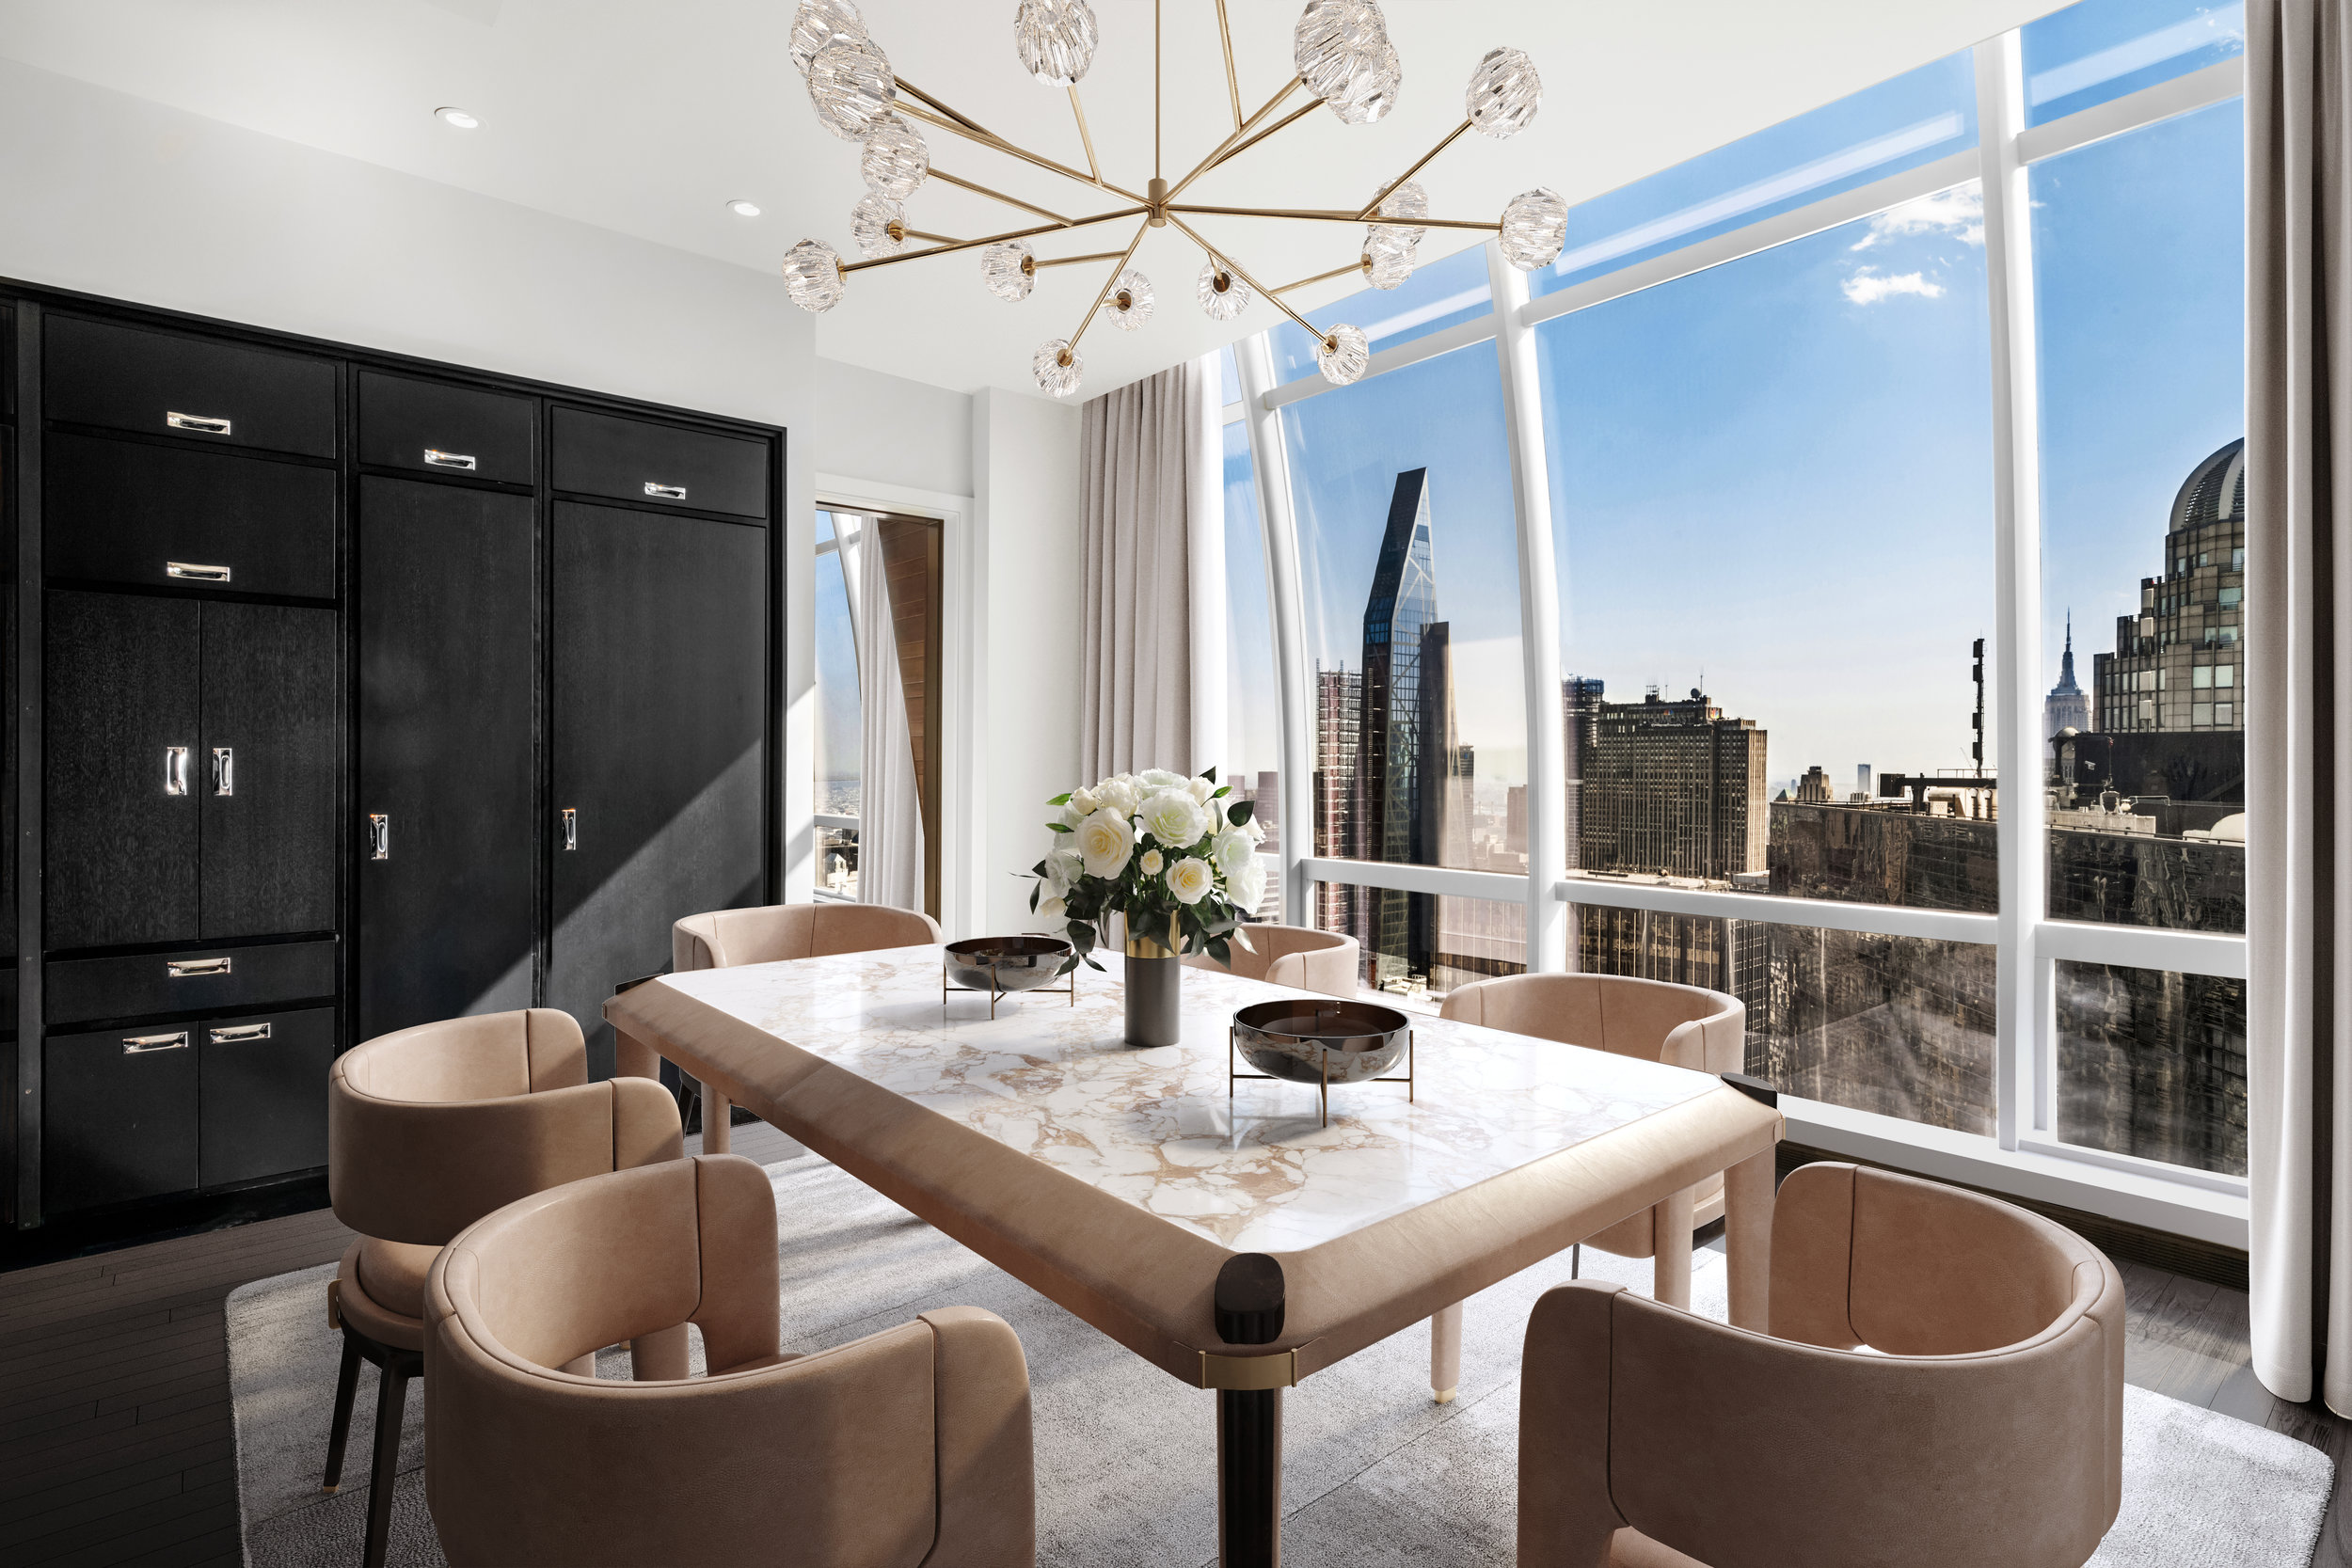 One57157West57thSt67B-CentralParkSouthNewYork_Anthony_Barillo_DouglasElliman_Photography_76924766_high_res.jpg